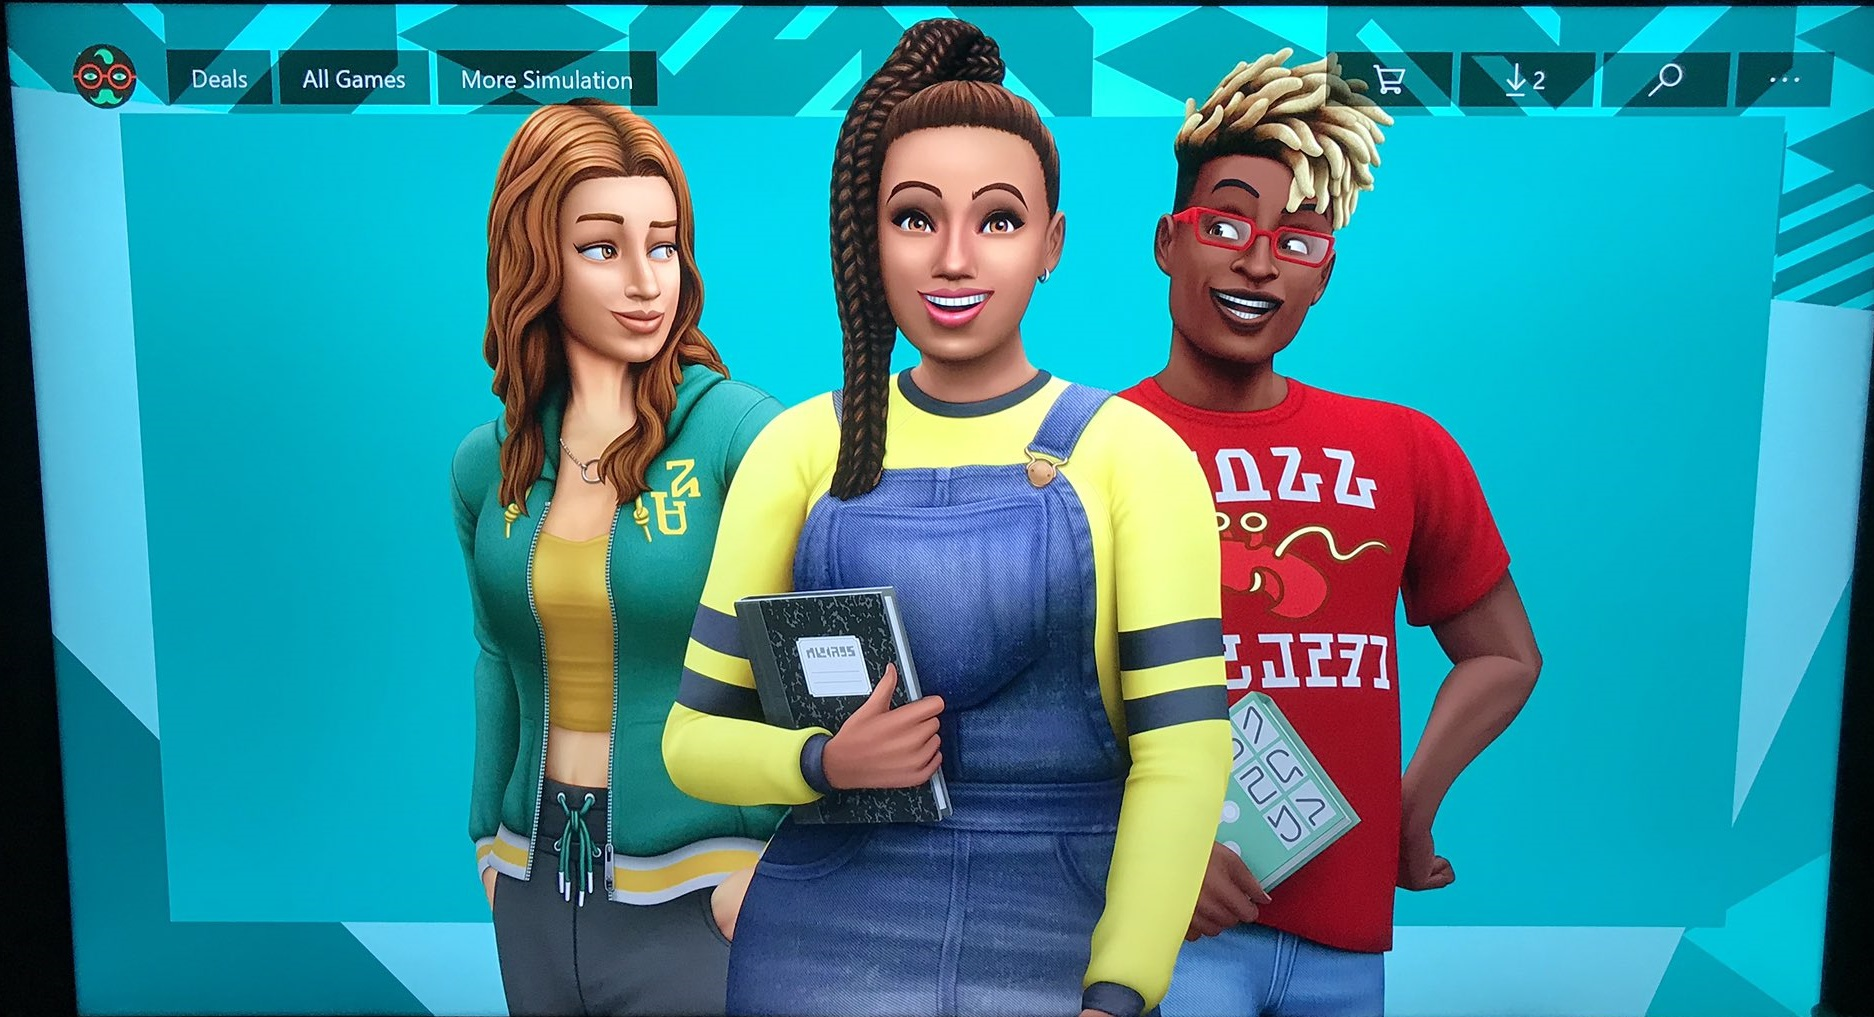 The Sims 4: Discover Unversity is coming up Next Nov 15, 2019. Discover-uni-1